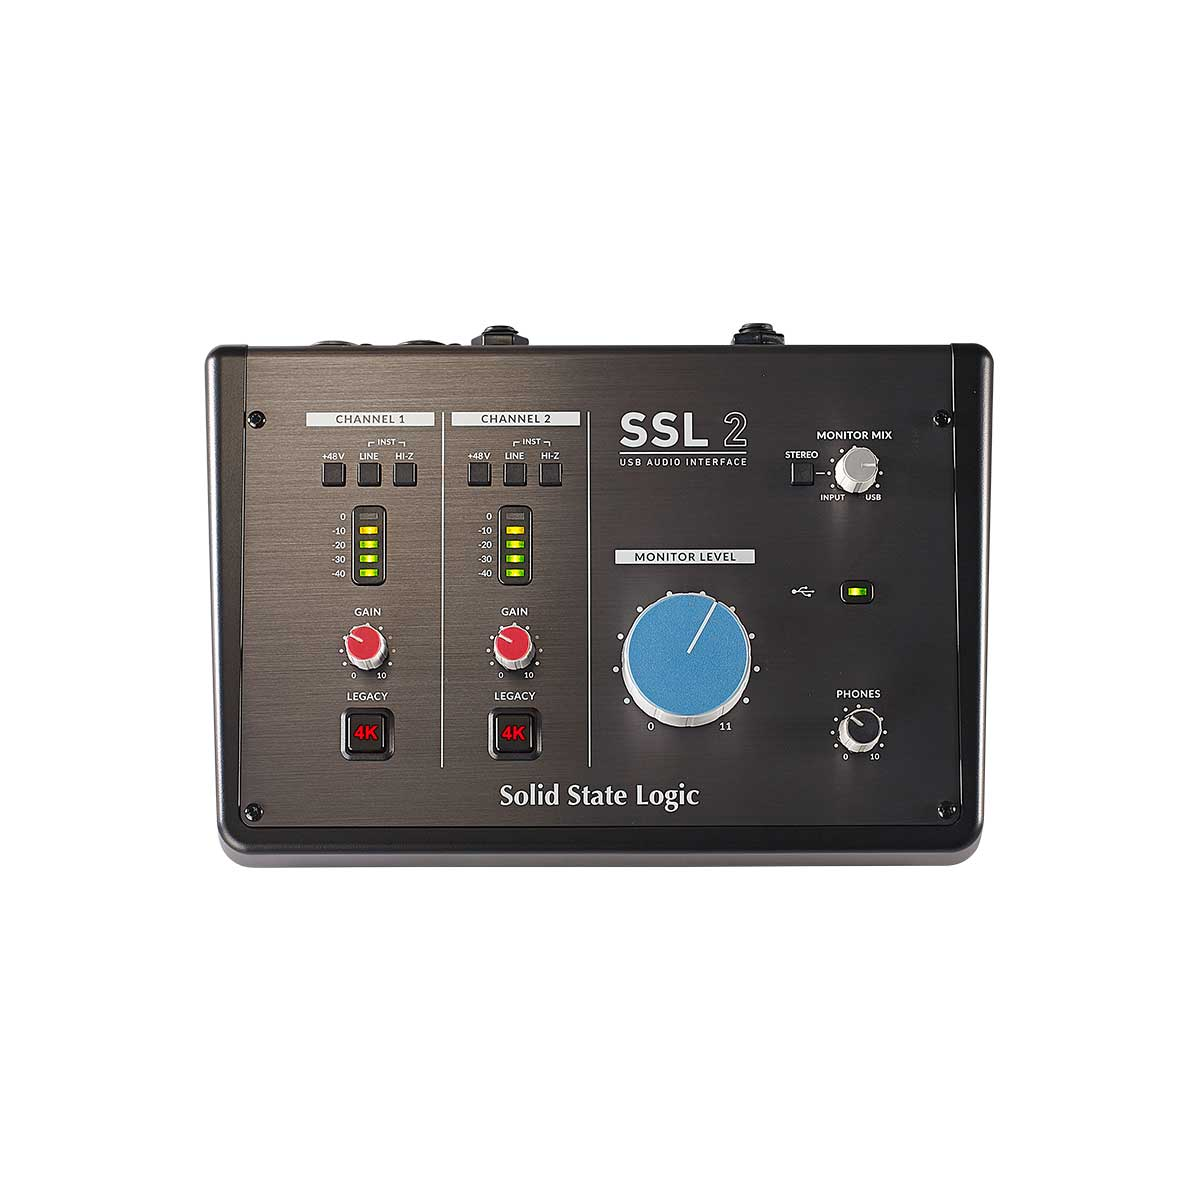 Solid State Logic 2 2-channel USB Audio Interface